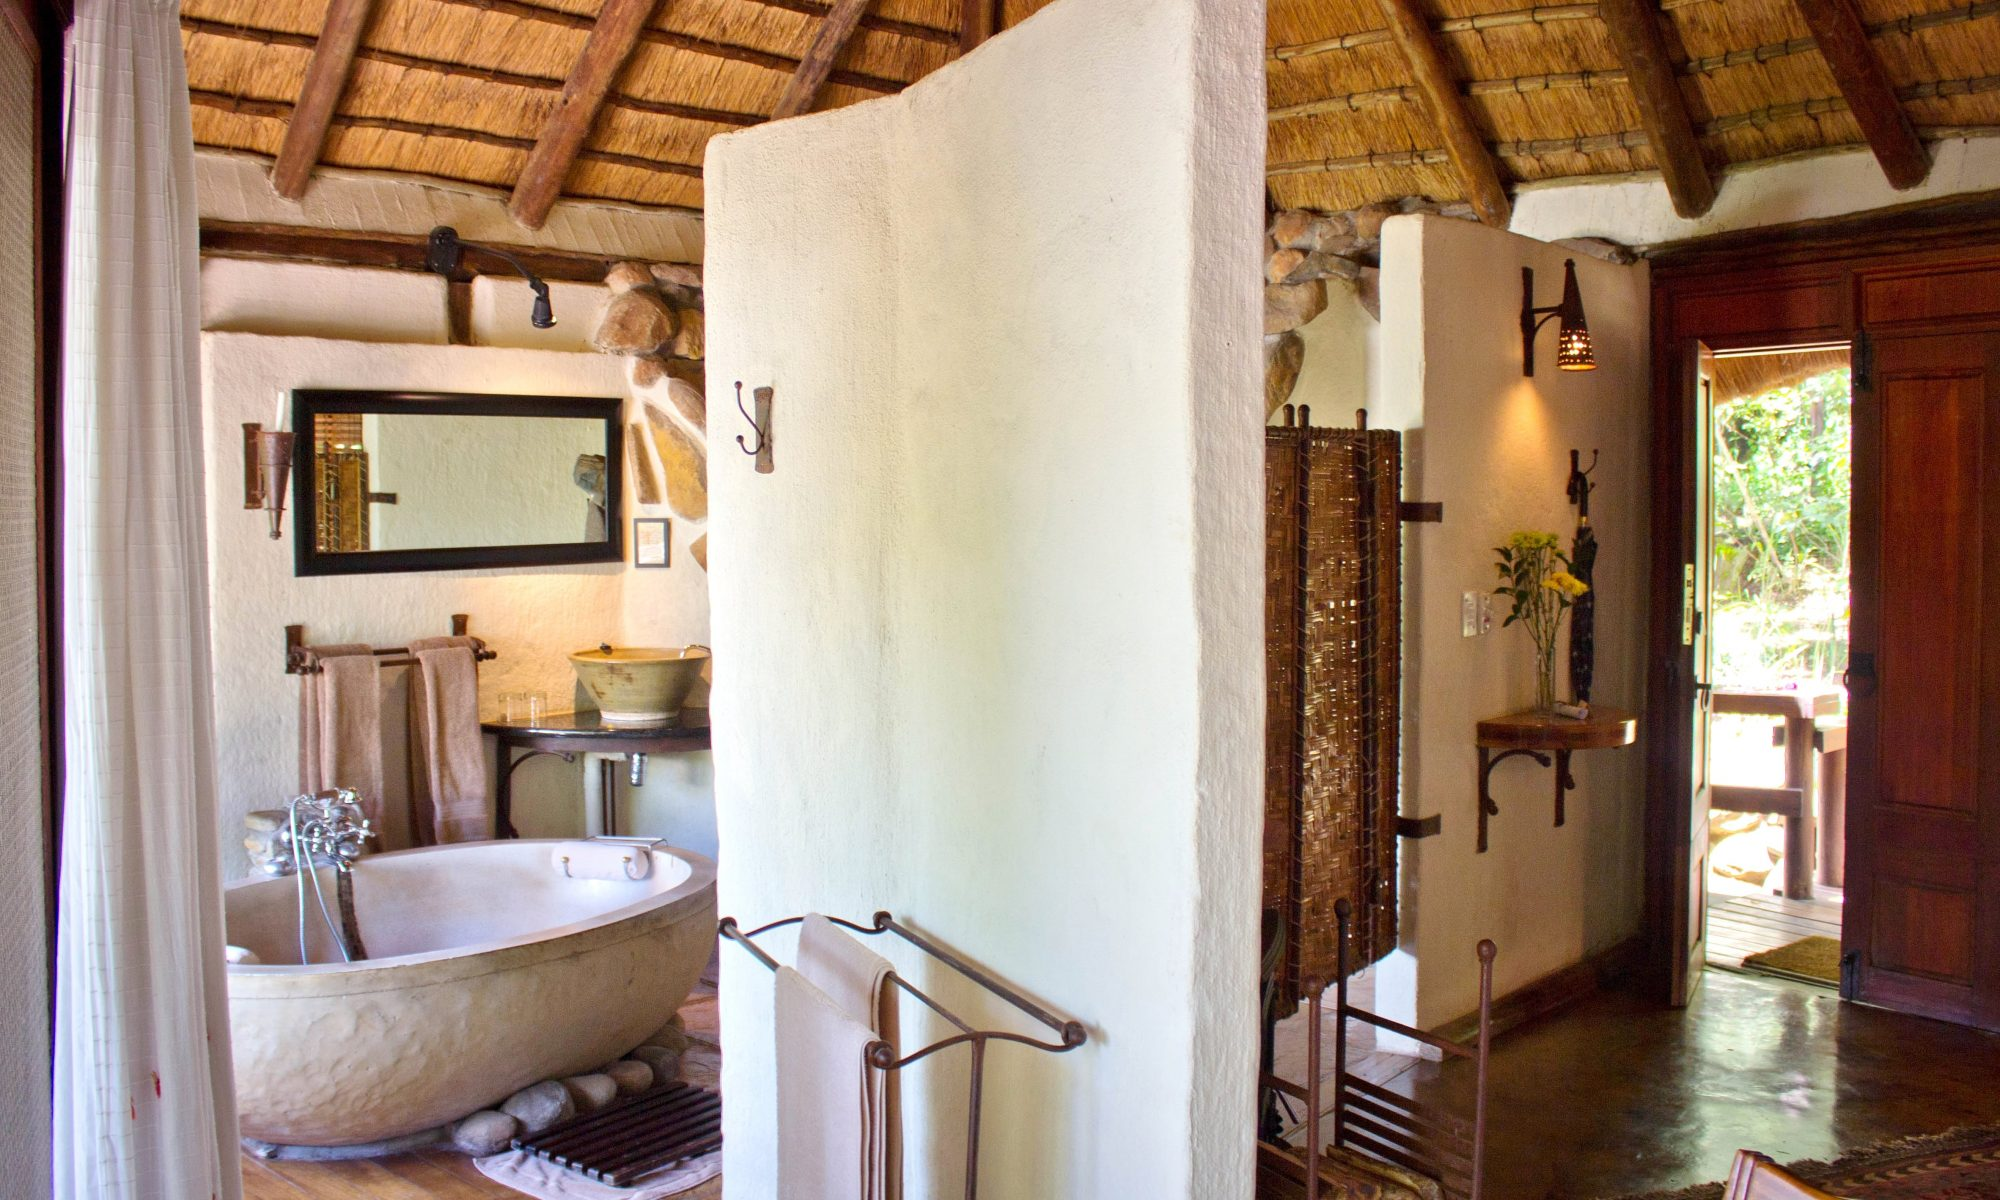 Tanamera Lodge, Hazyview, Mpumalanga (8)